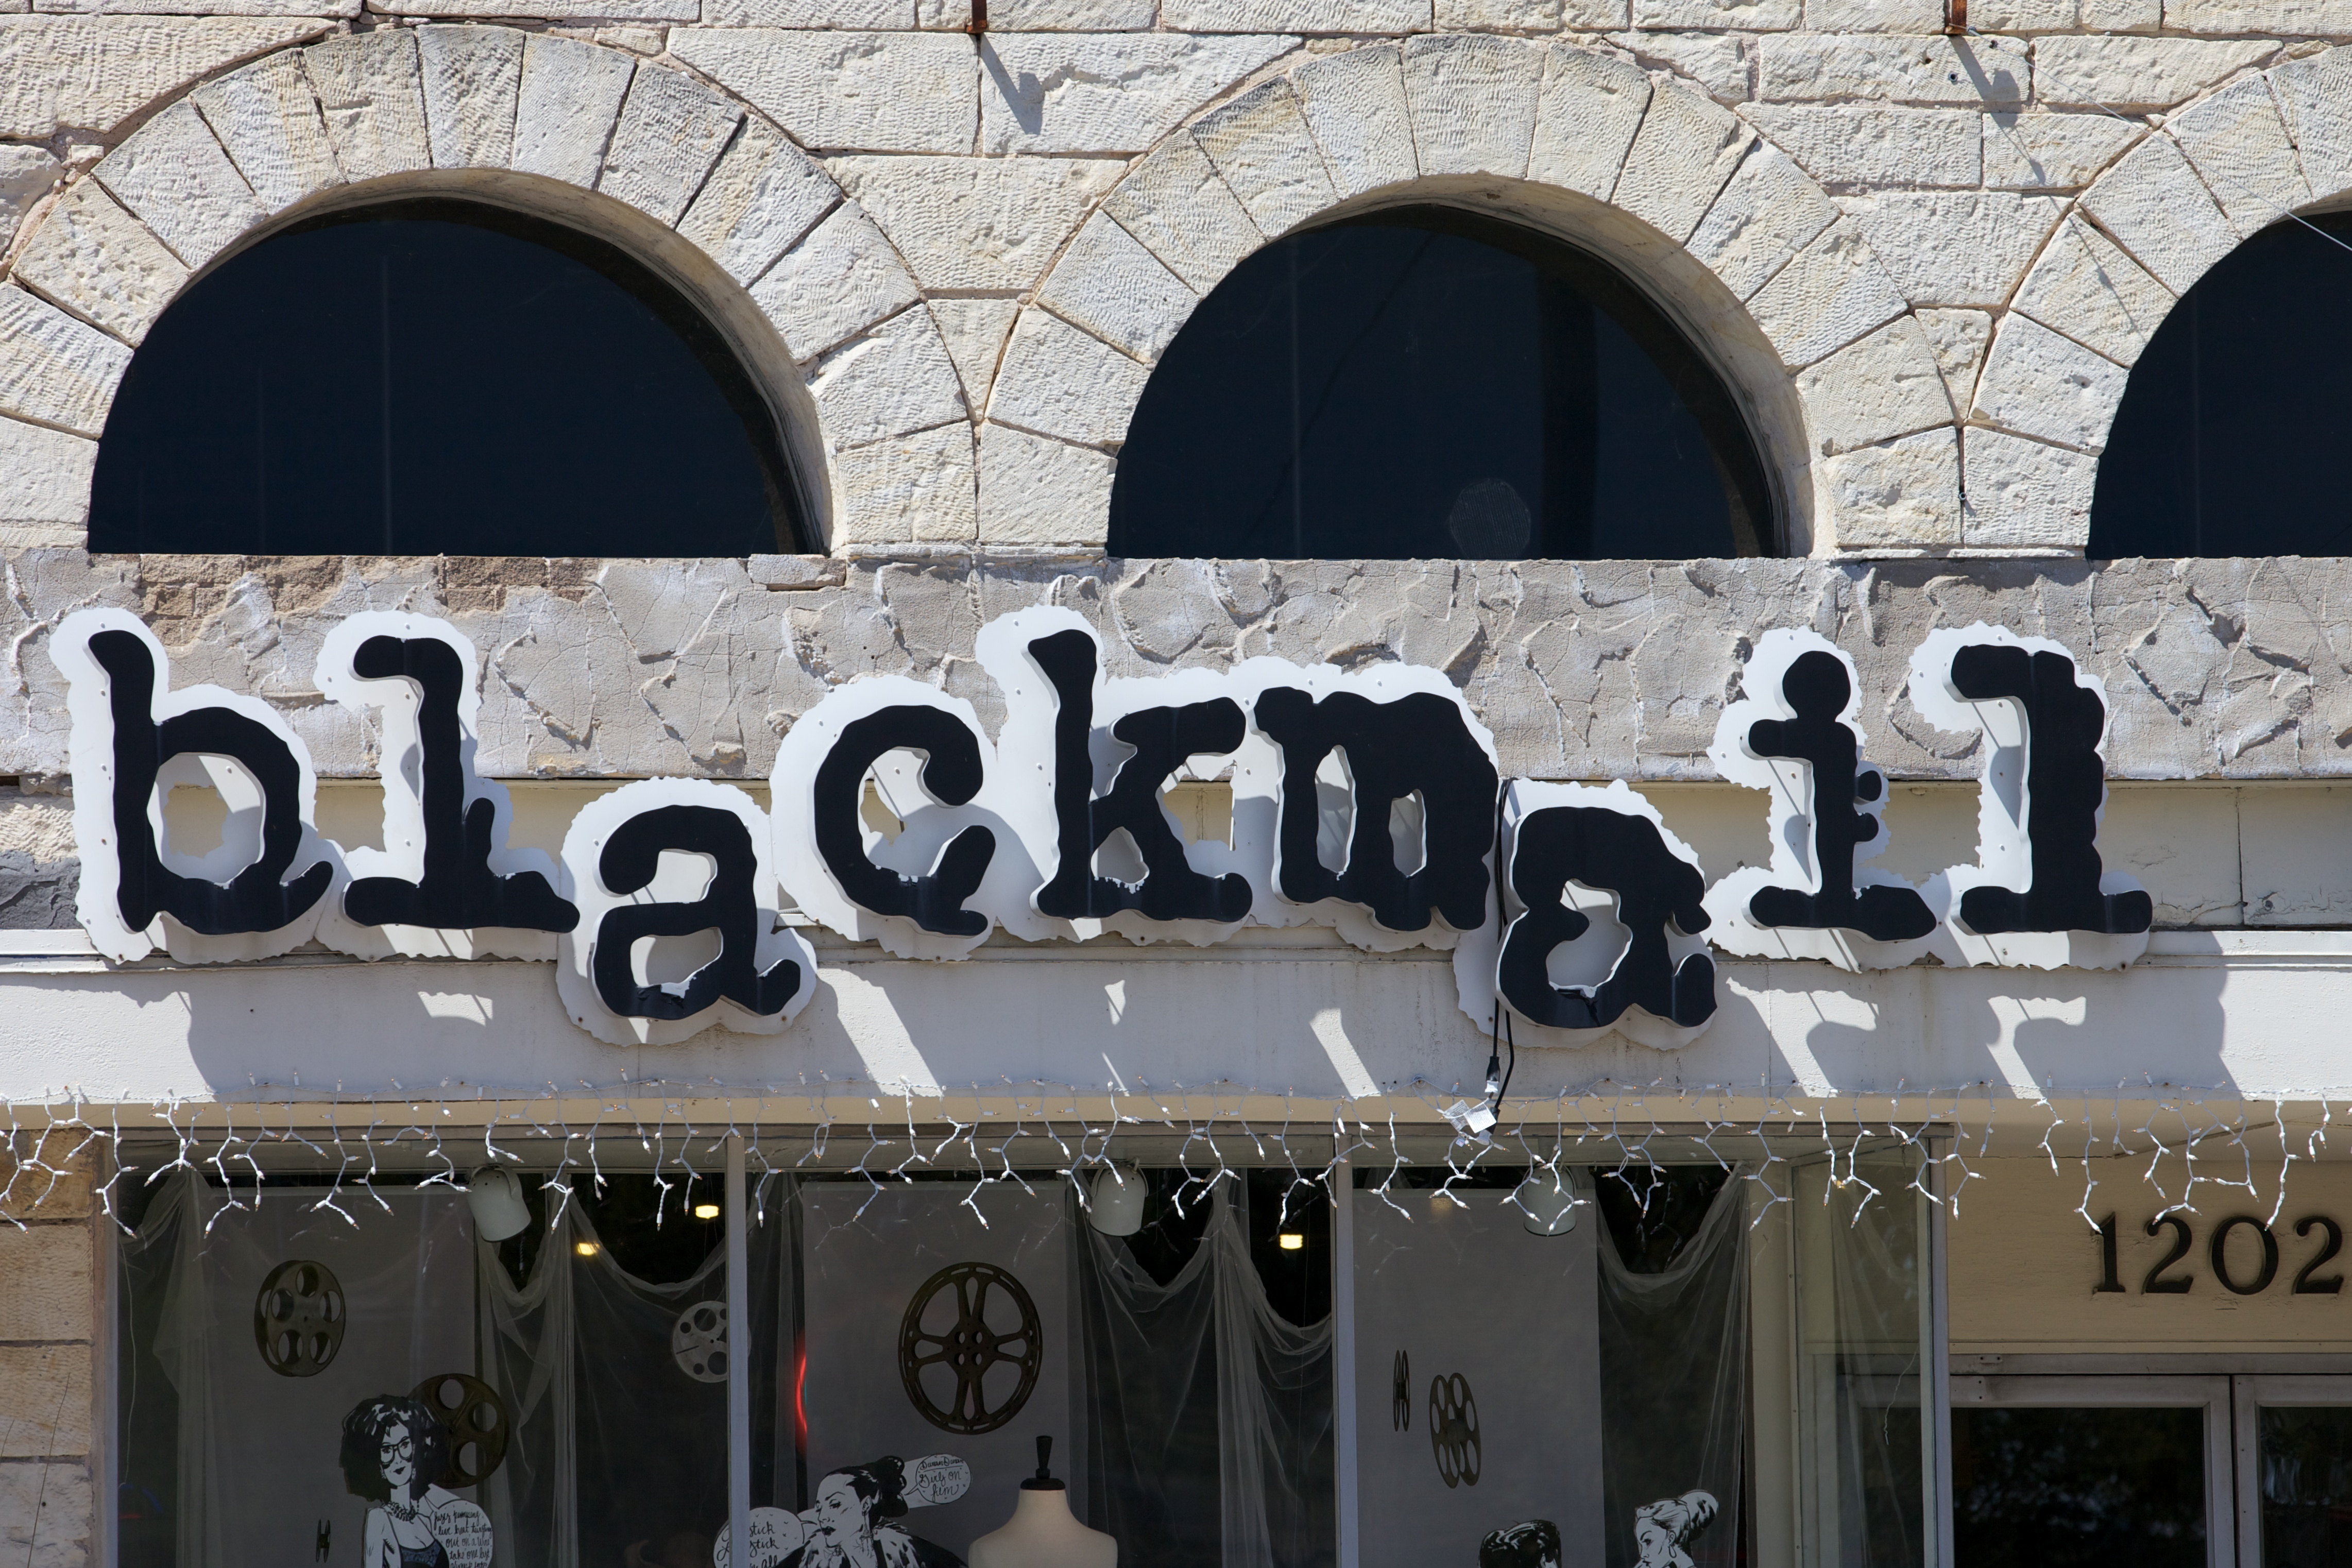 Sign outside limestone building that spells blackmail no caps looks like exploded Courier